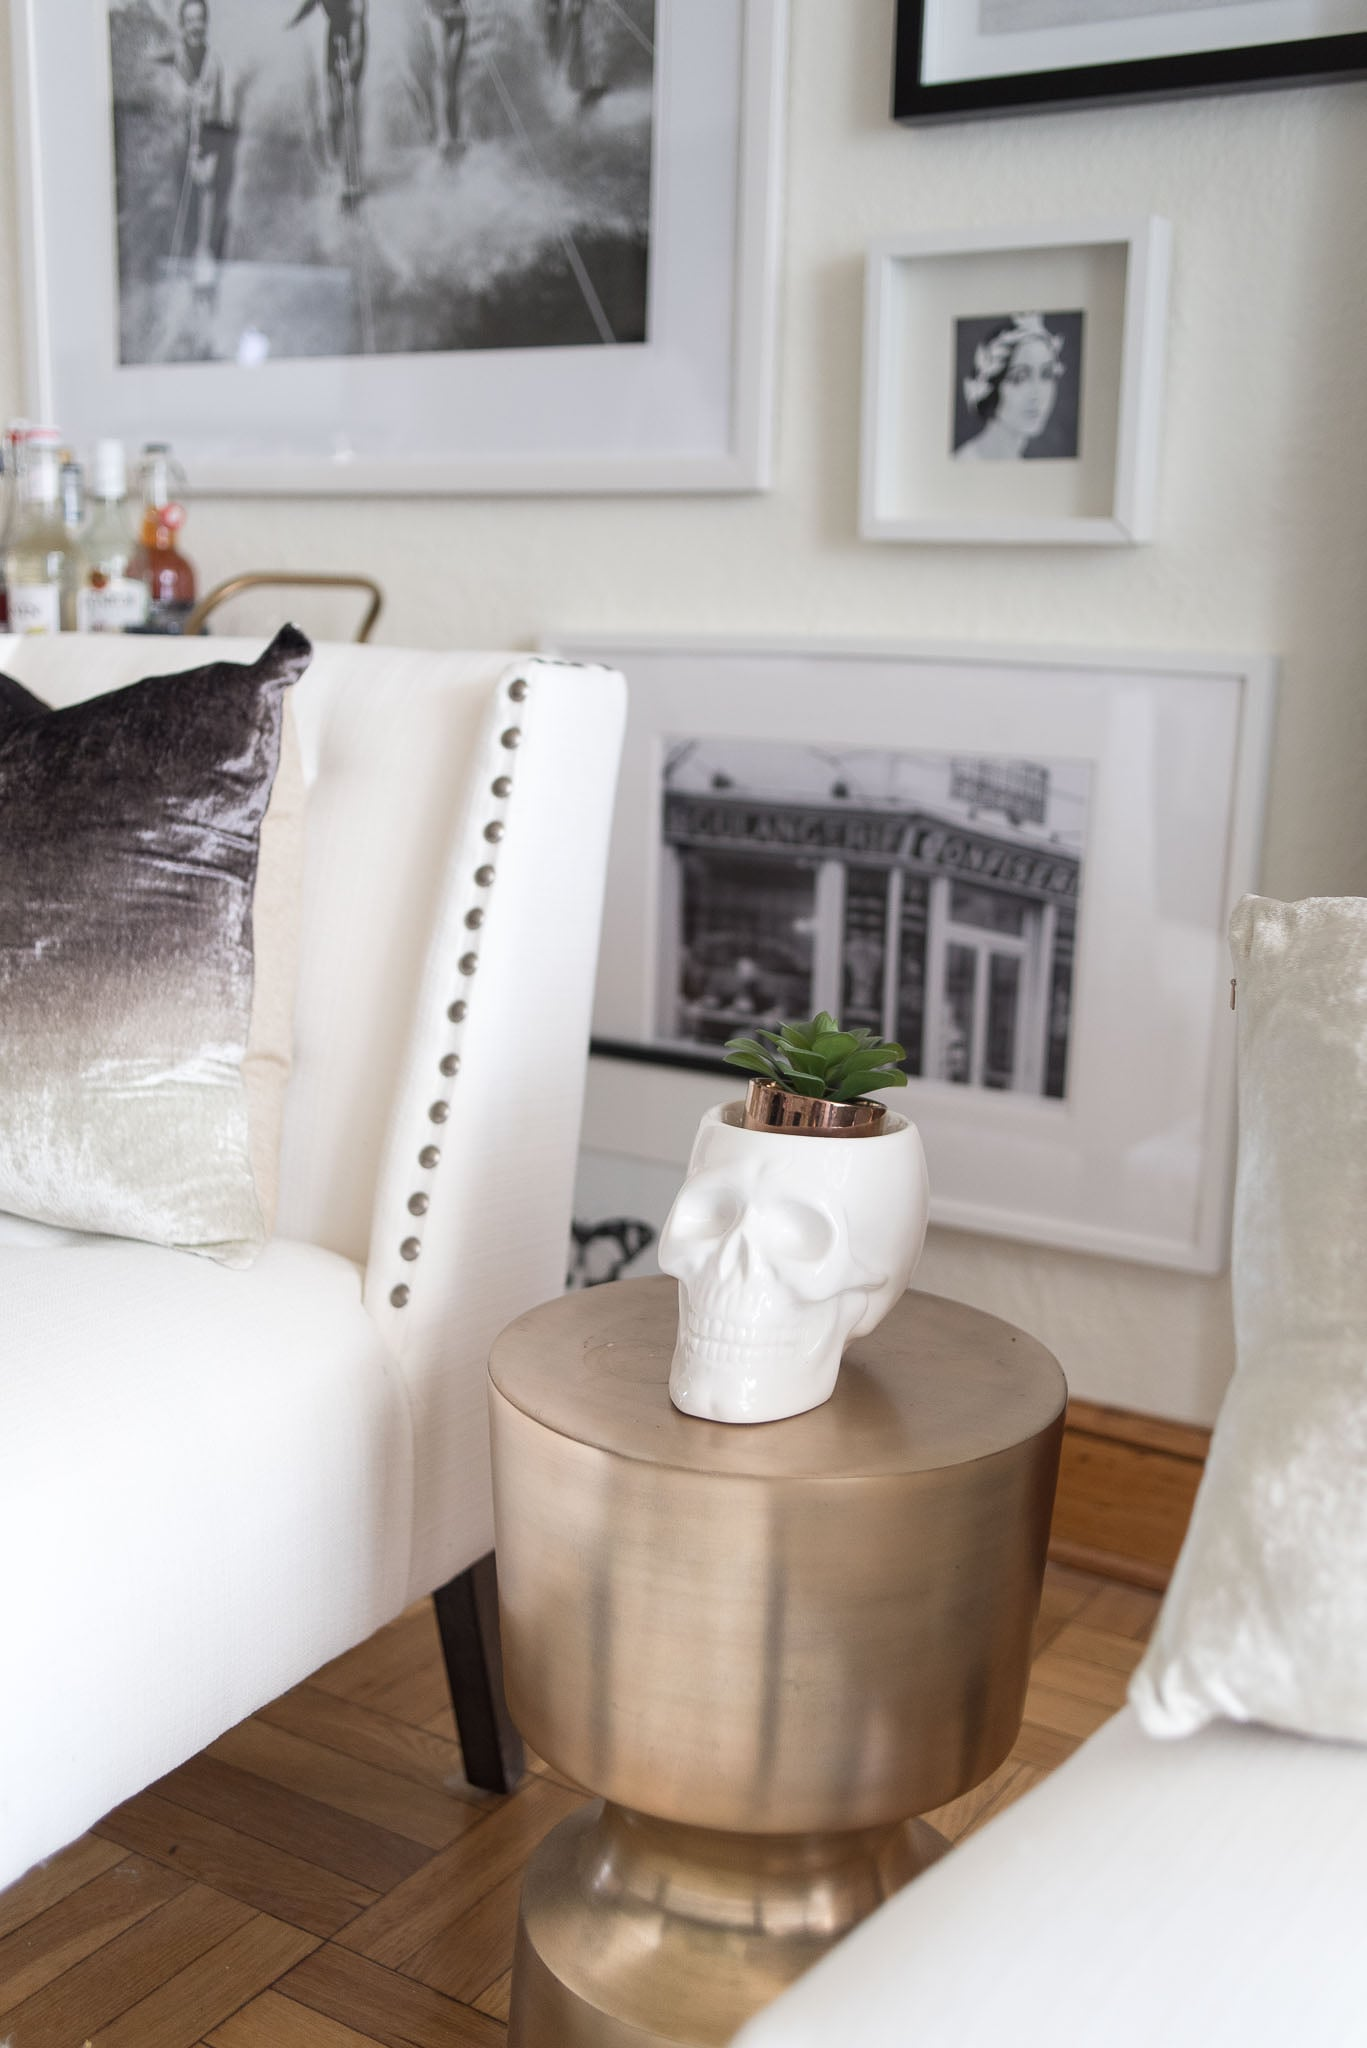 3 Home Decor Trends For Spring Brittany Stager: Where To Shop For Affordable Home Decor